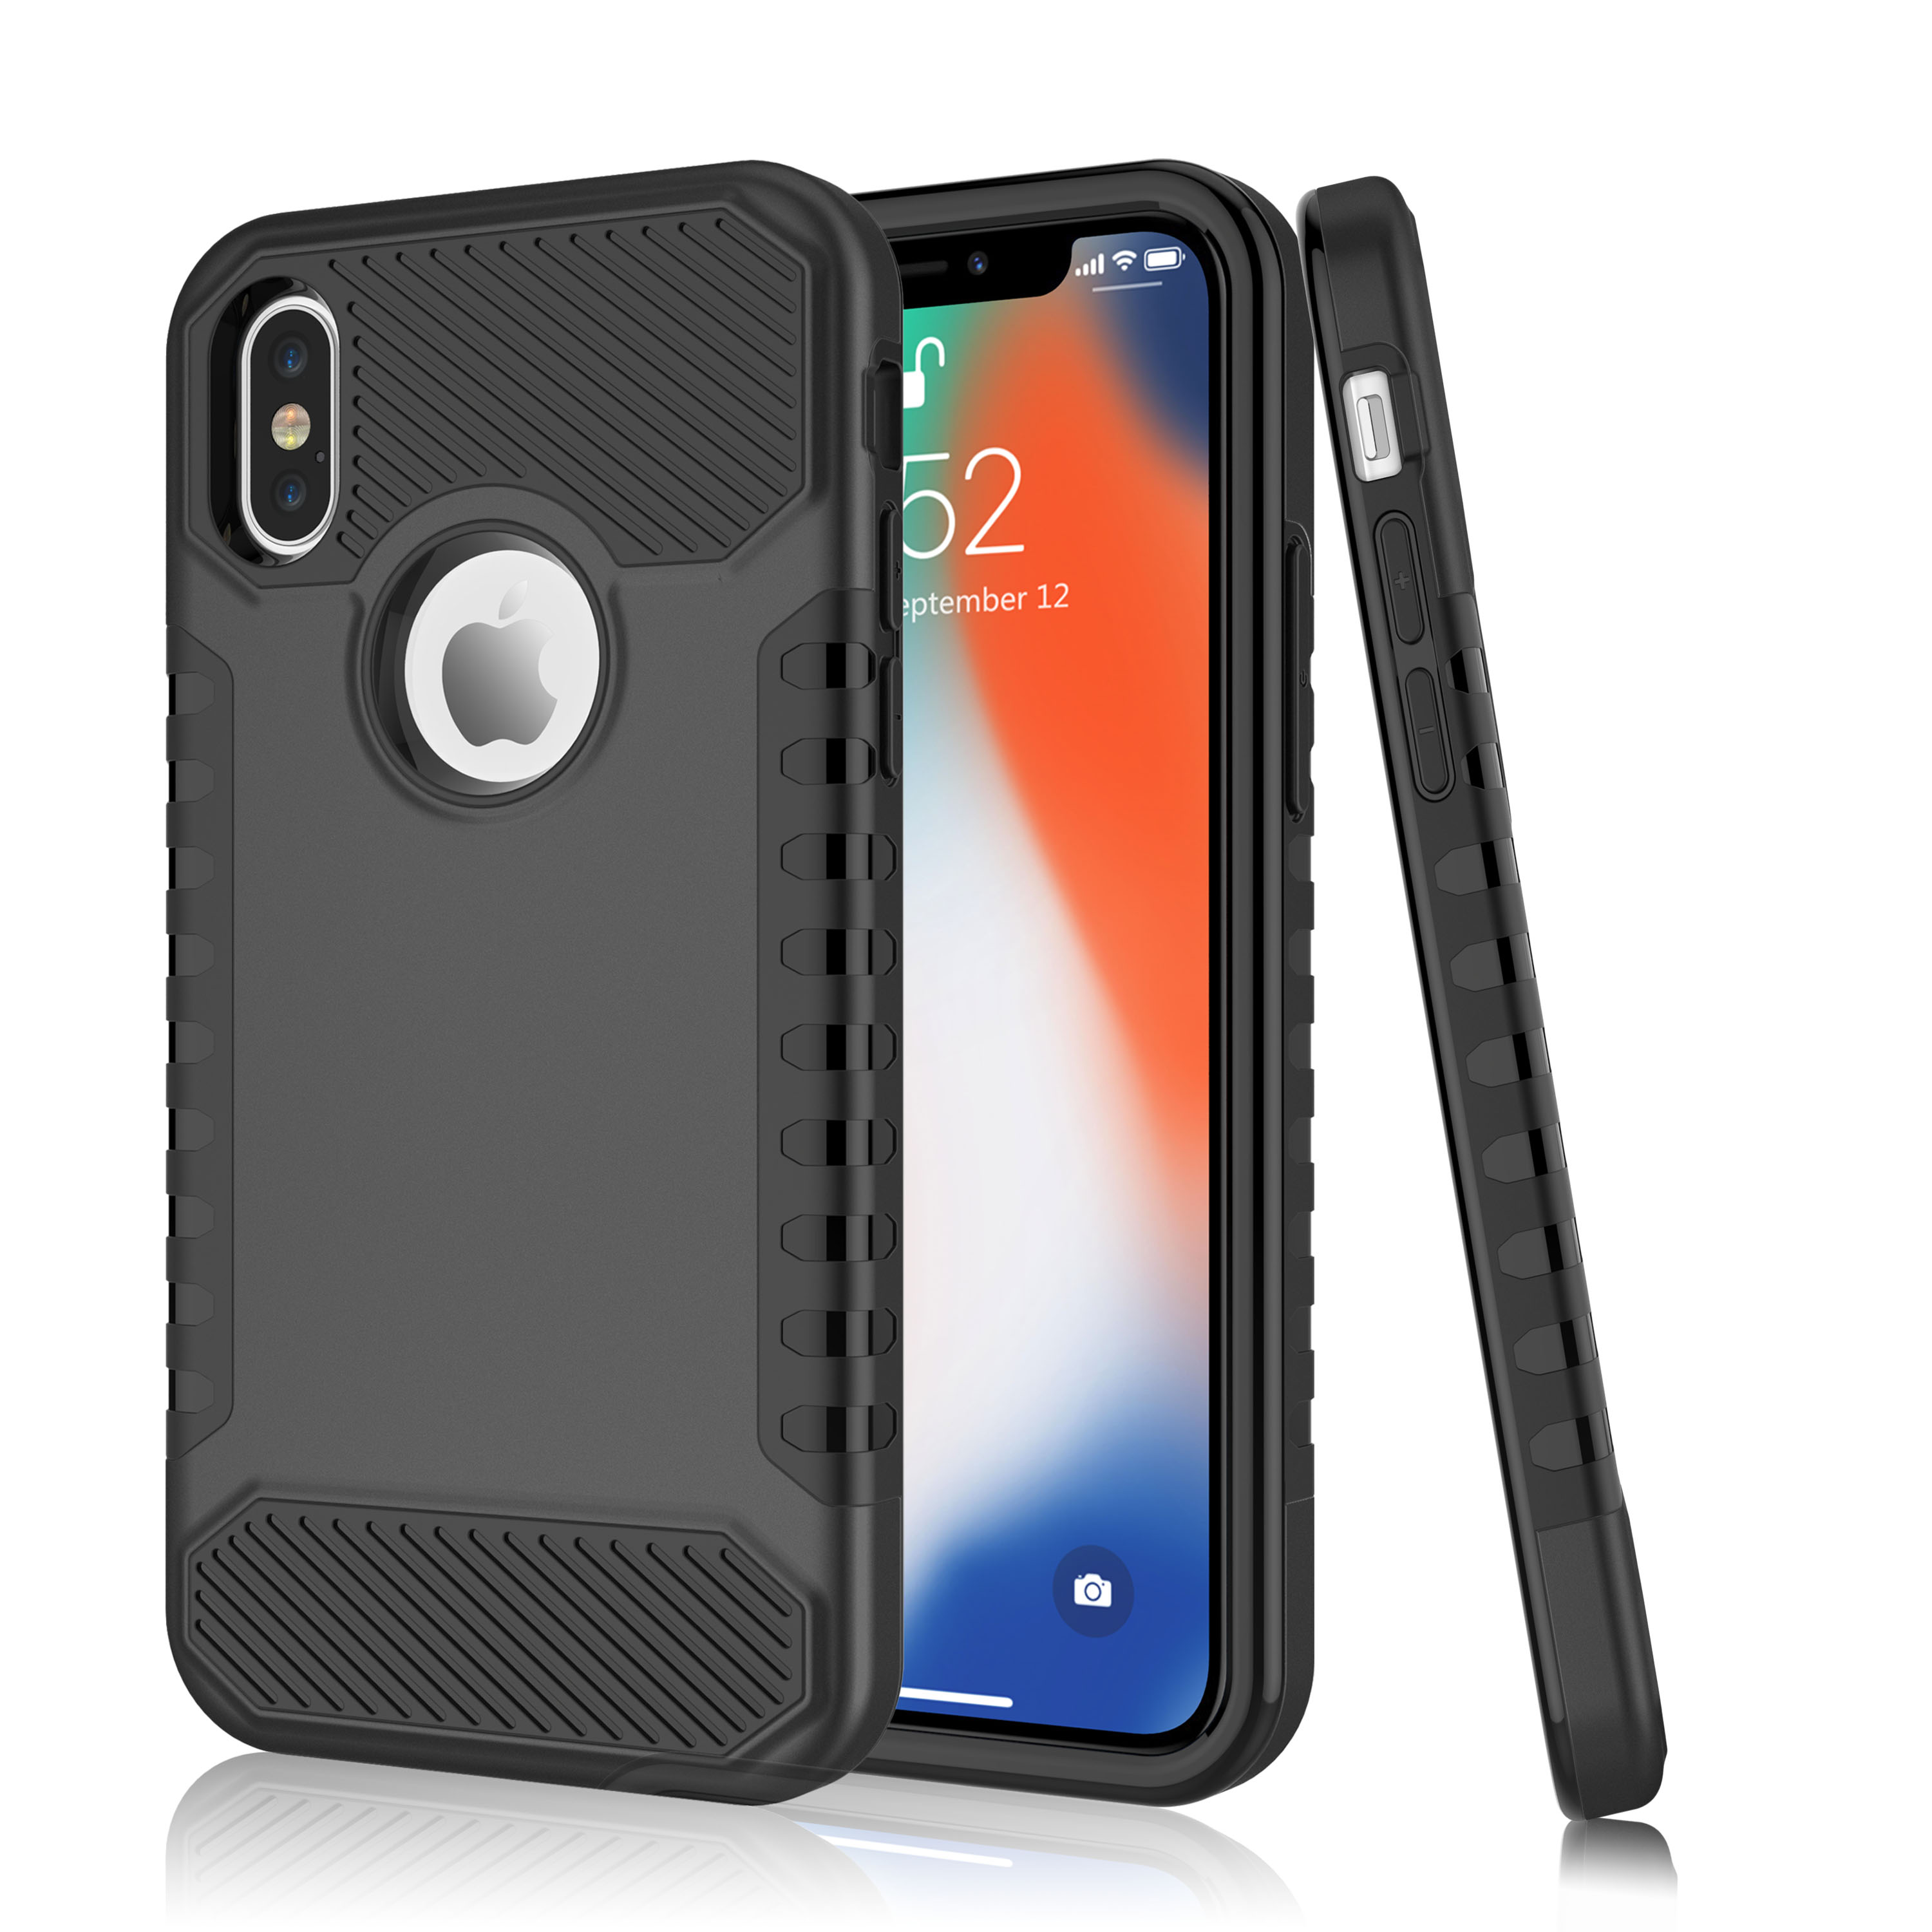 """iPhone X Case, iPhone 10 Case, iPhone X Edition Case, Tekcoo [TDarmor ] Heavy Duty [Black] Hybrid Protective Case For Apple iPhone X 5.8"""""""